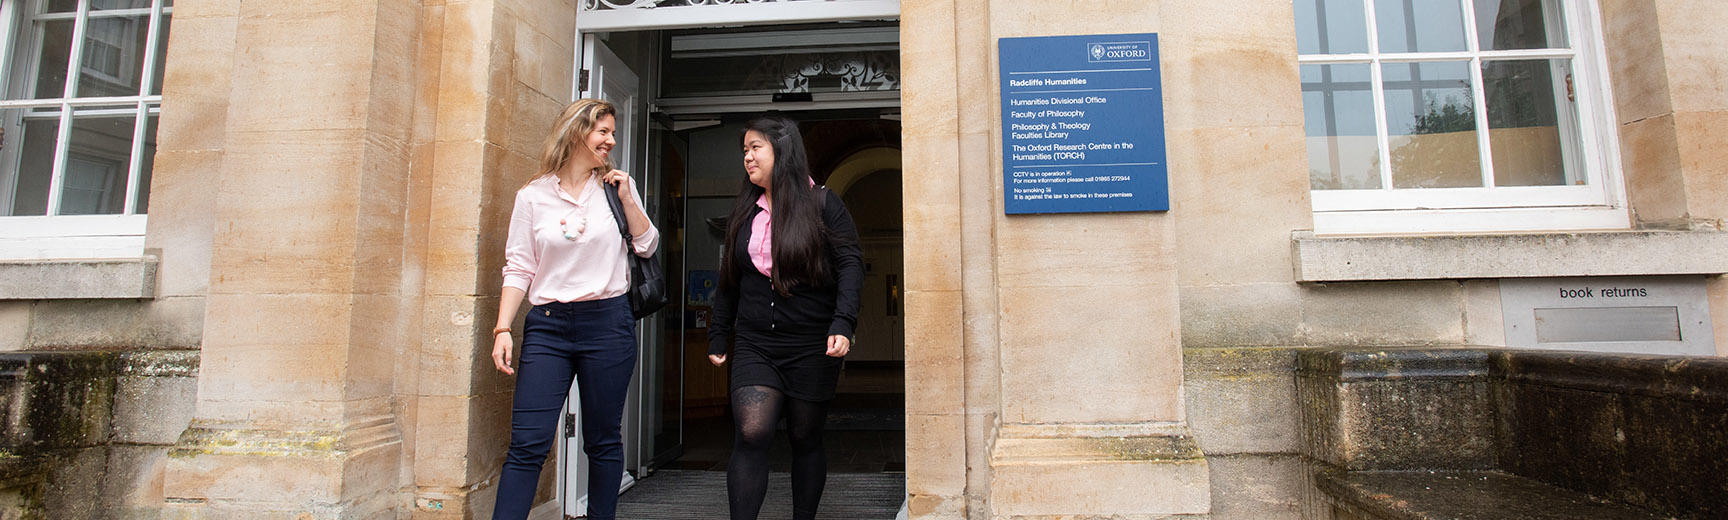 Two students leave a beige stone building